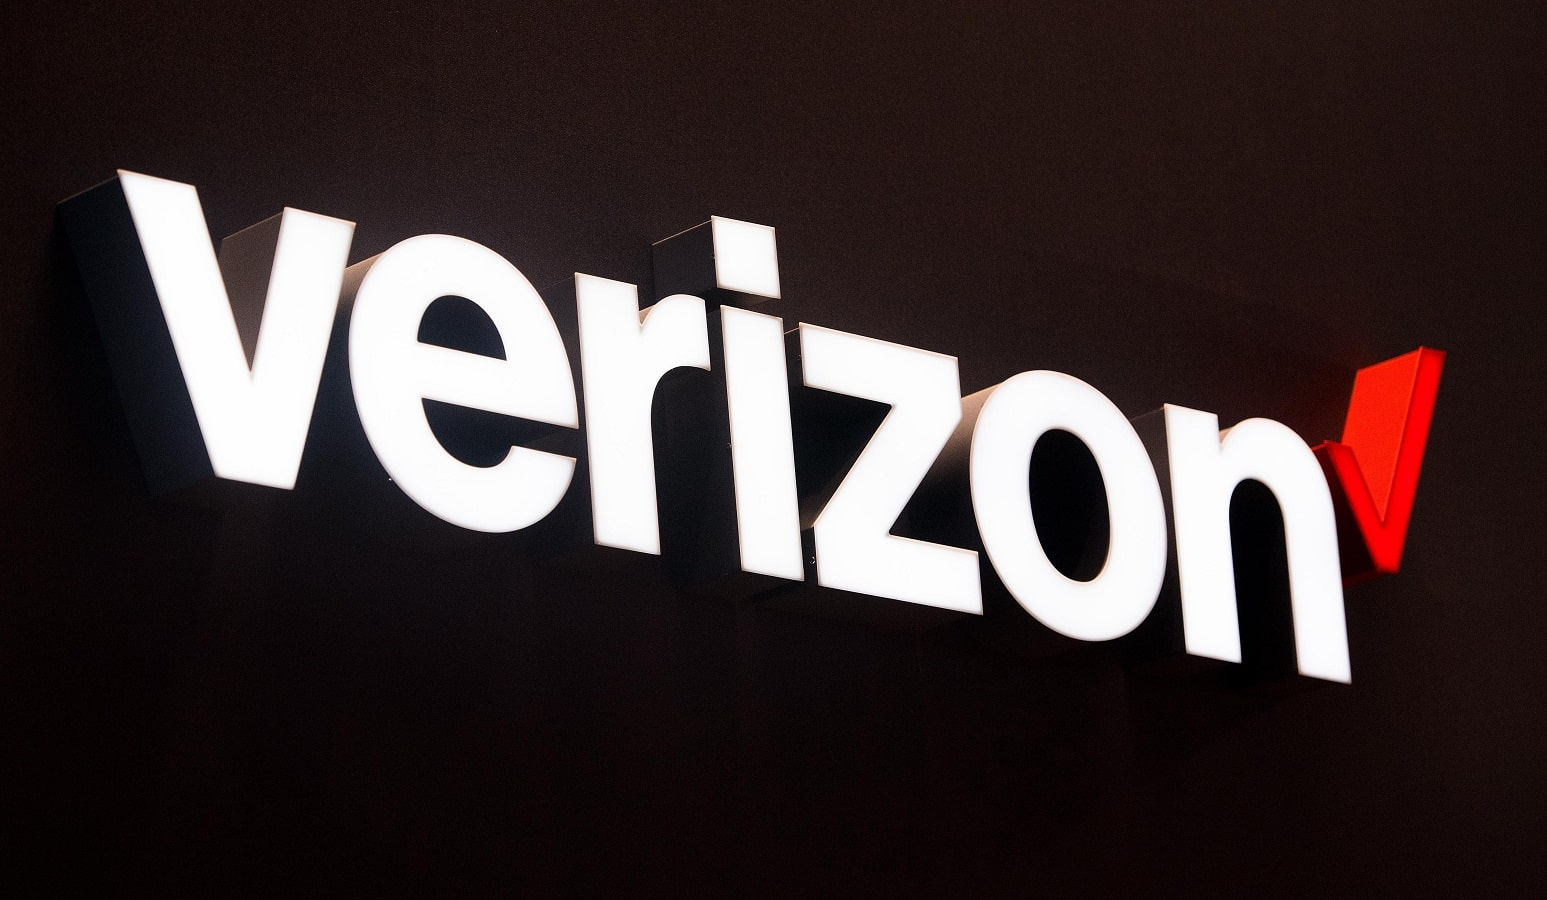 verizon logo in white